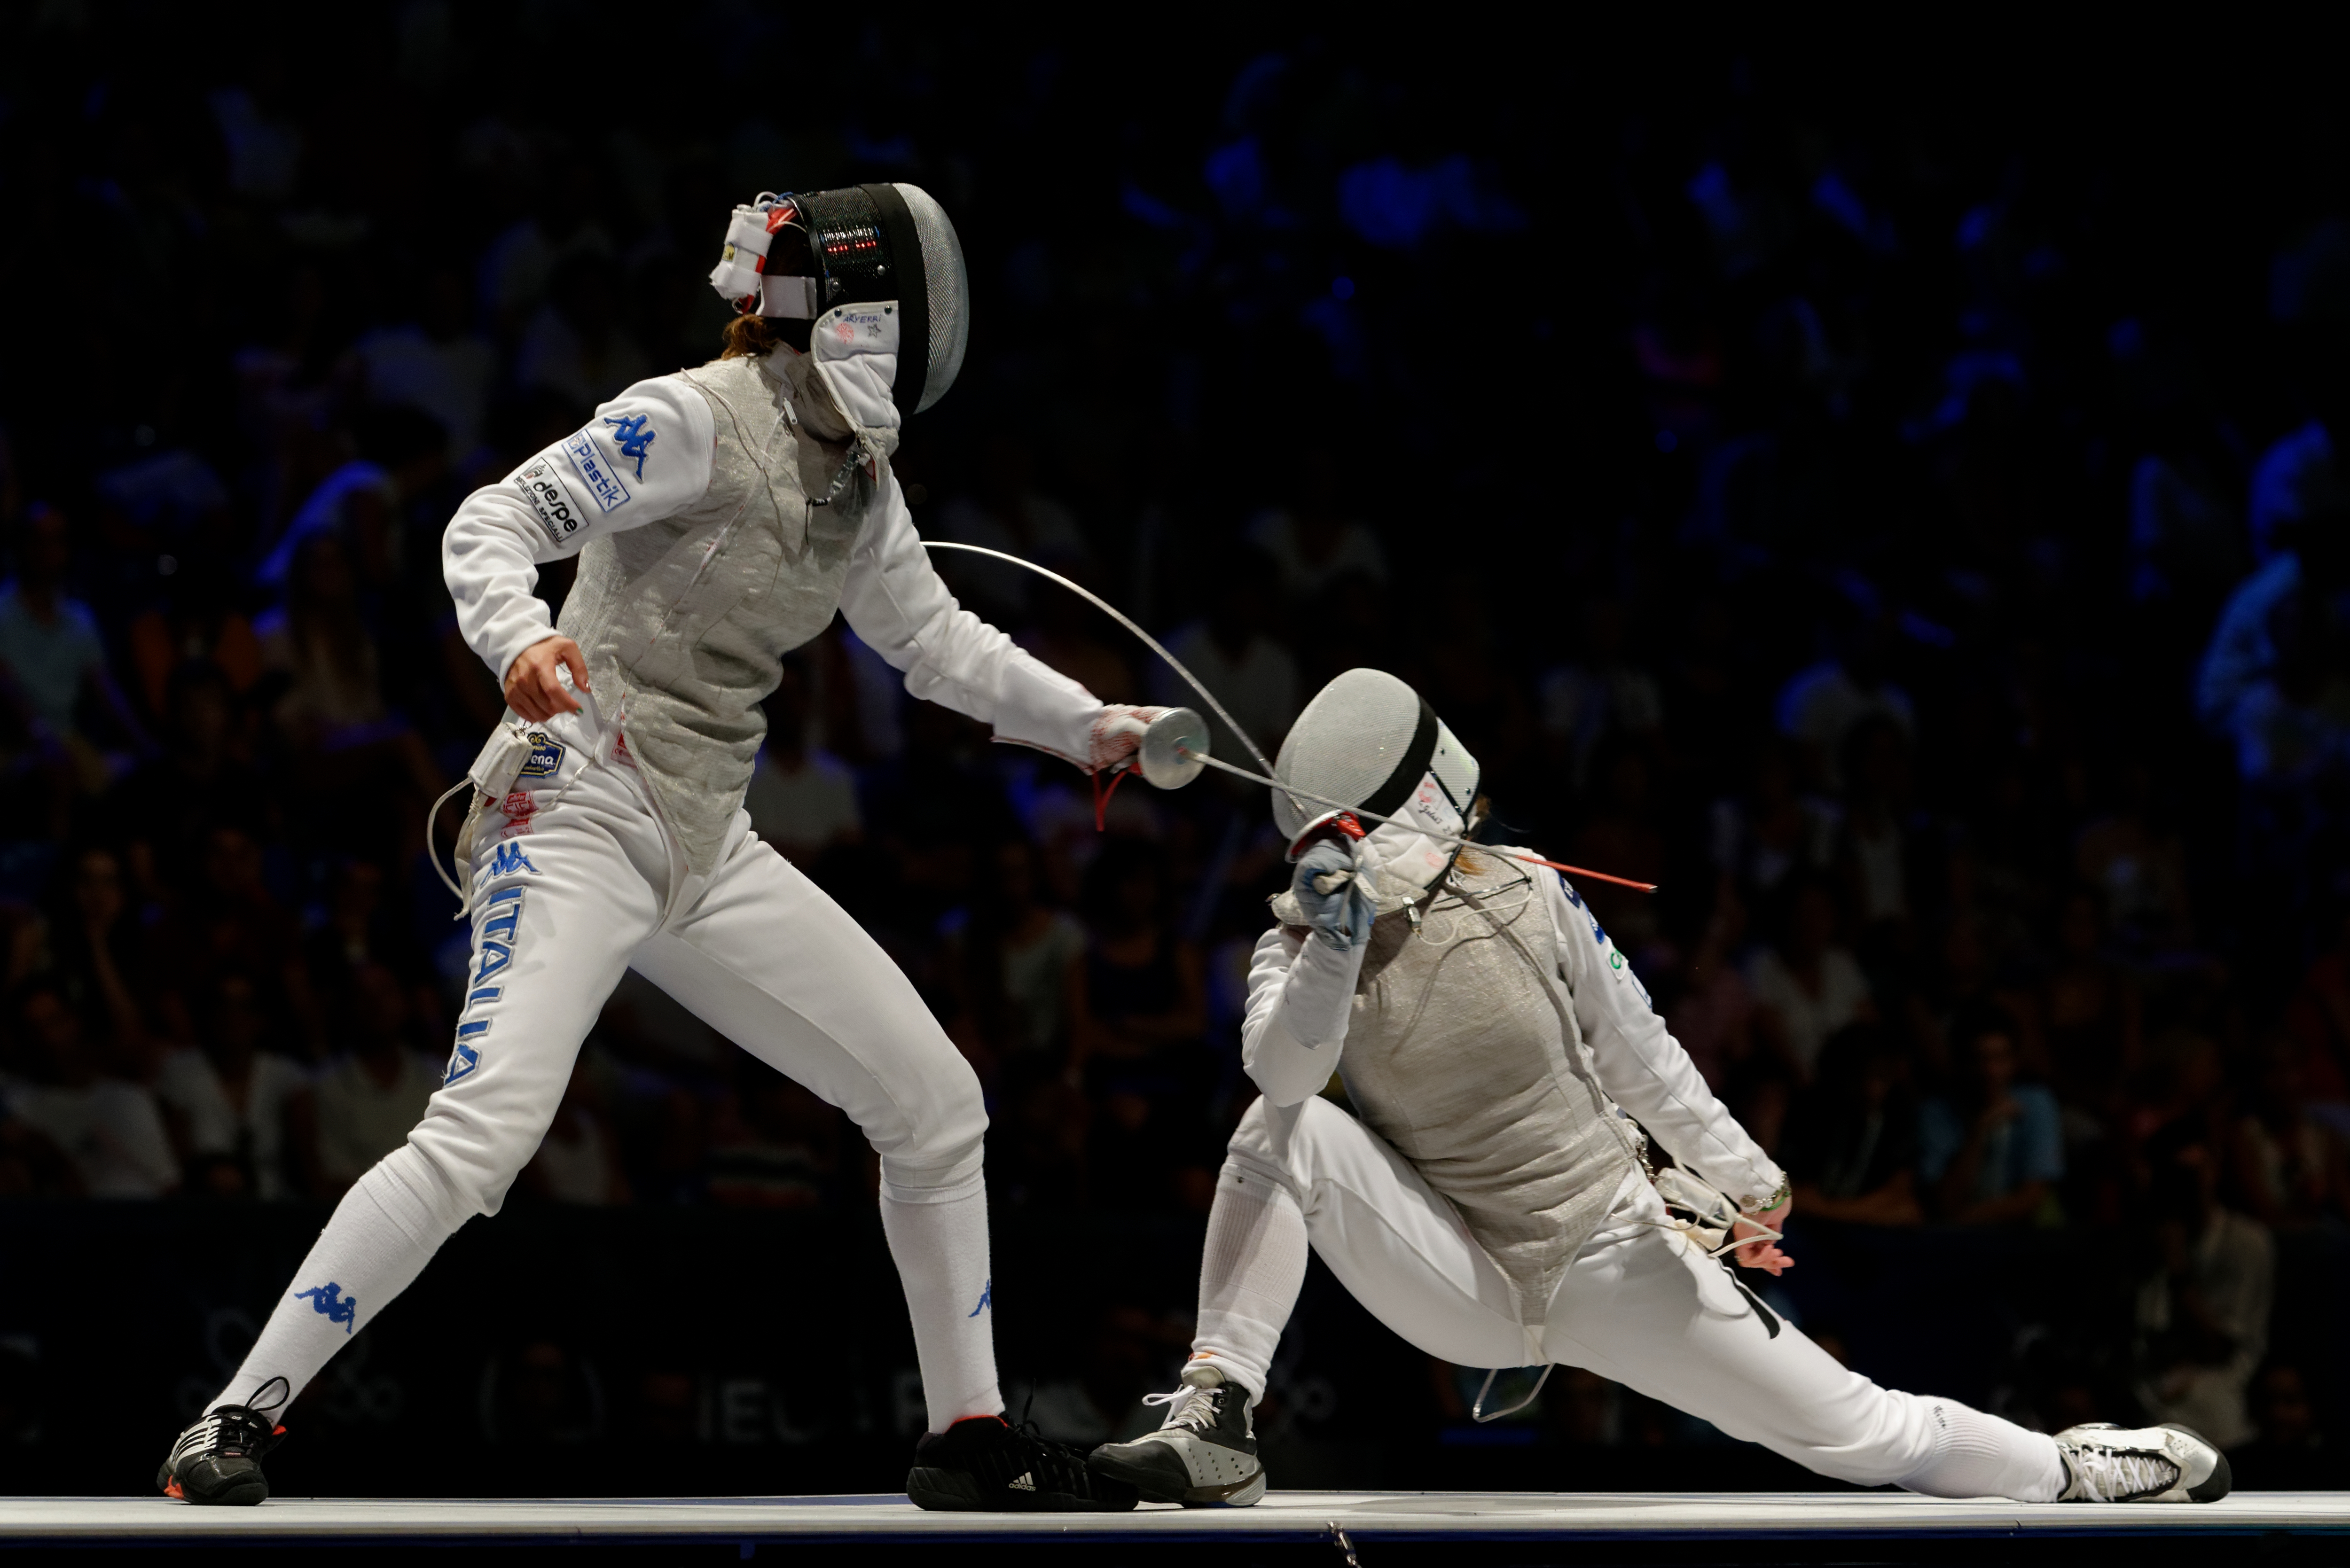 Foil (fencing) - Wikipedia